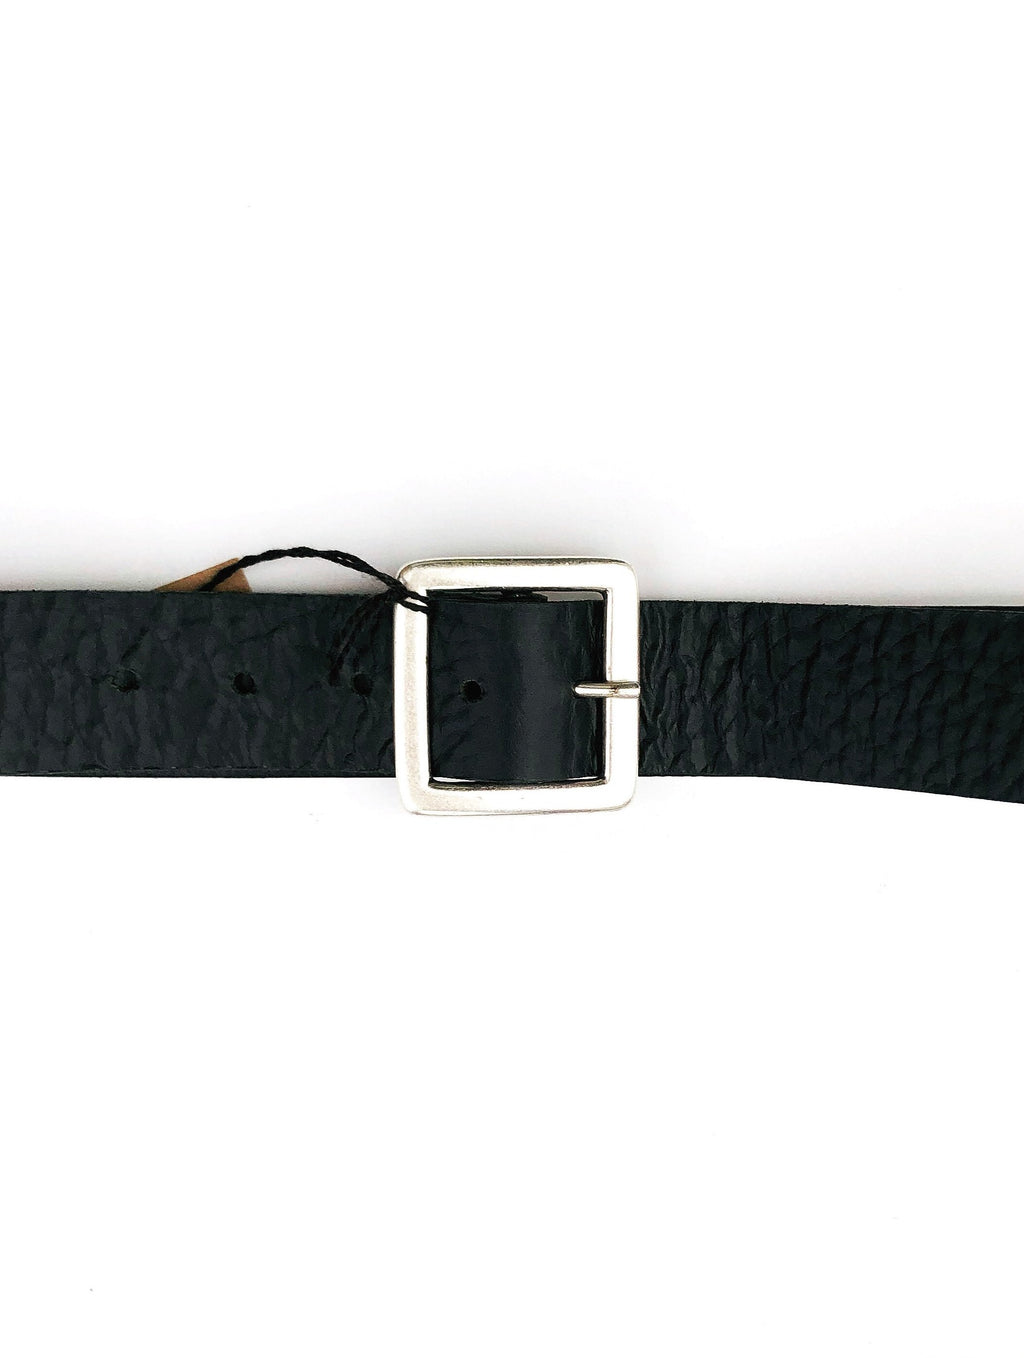 Hestia Belt - Black/Silver